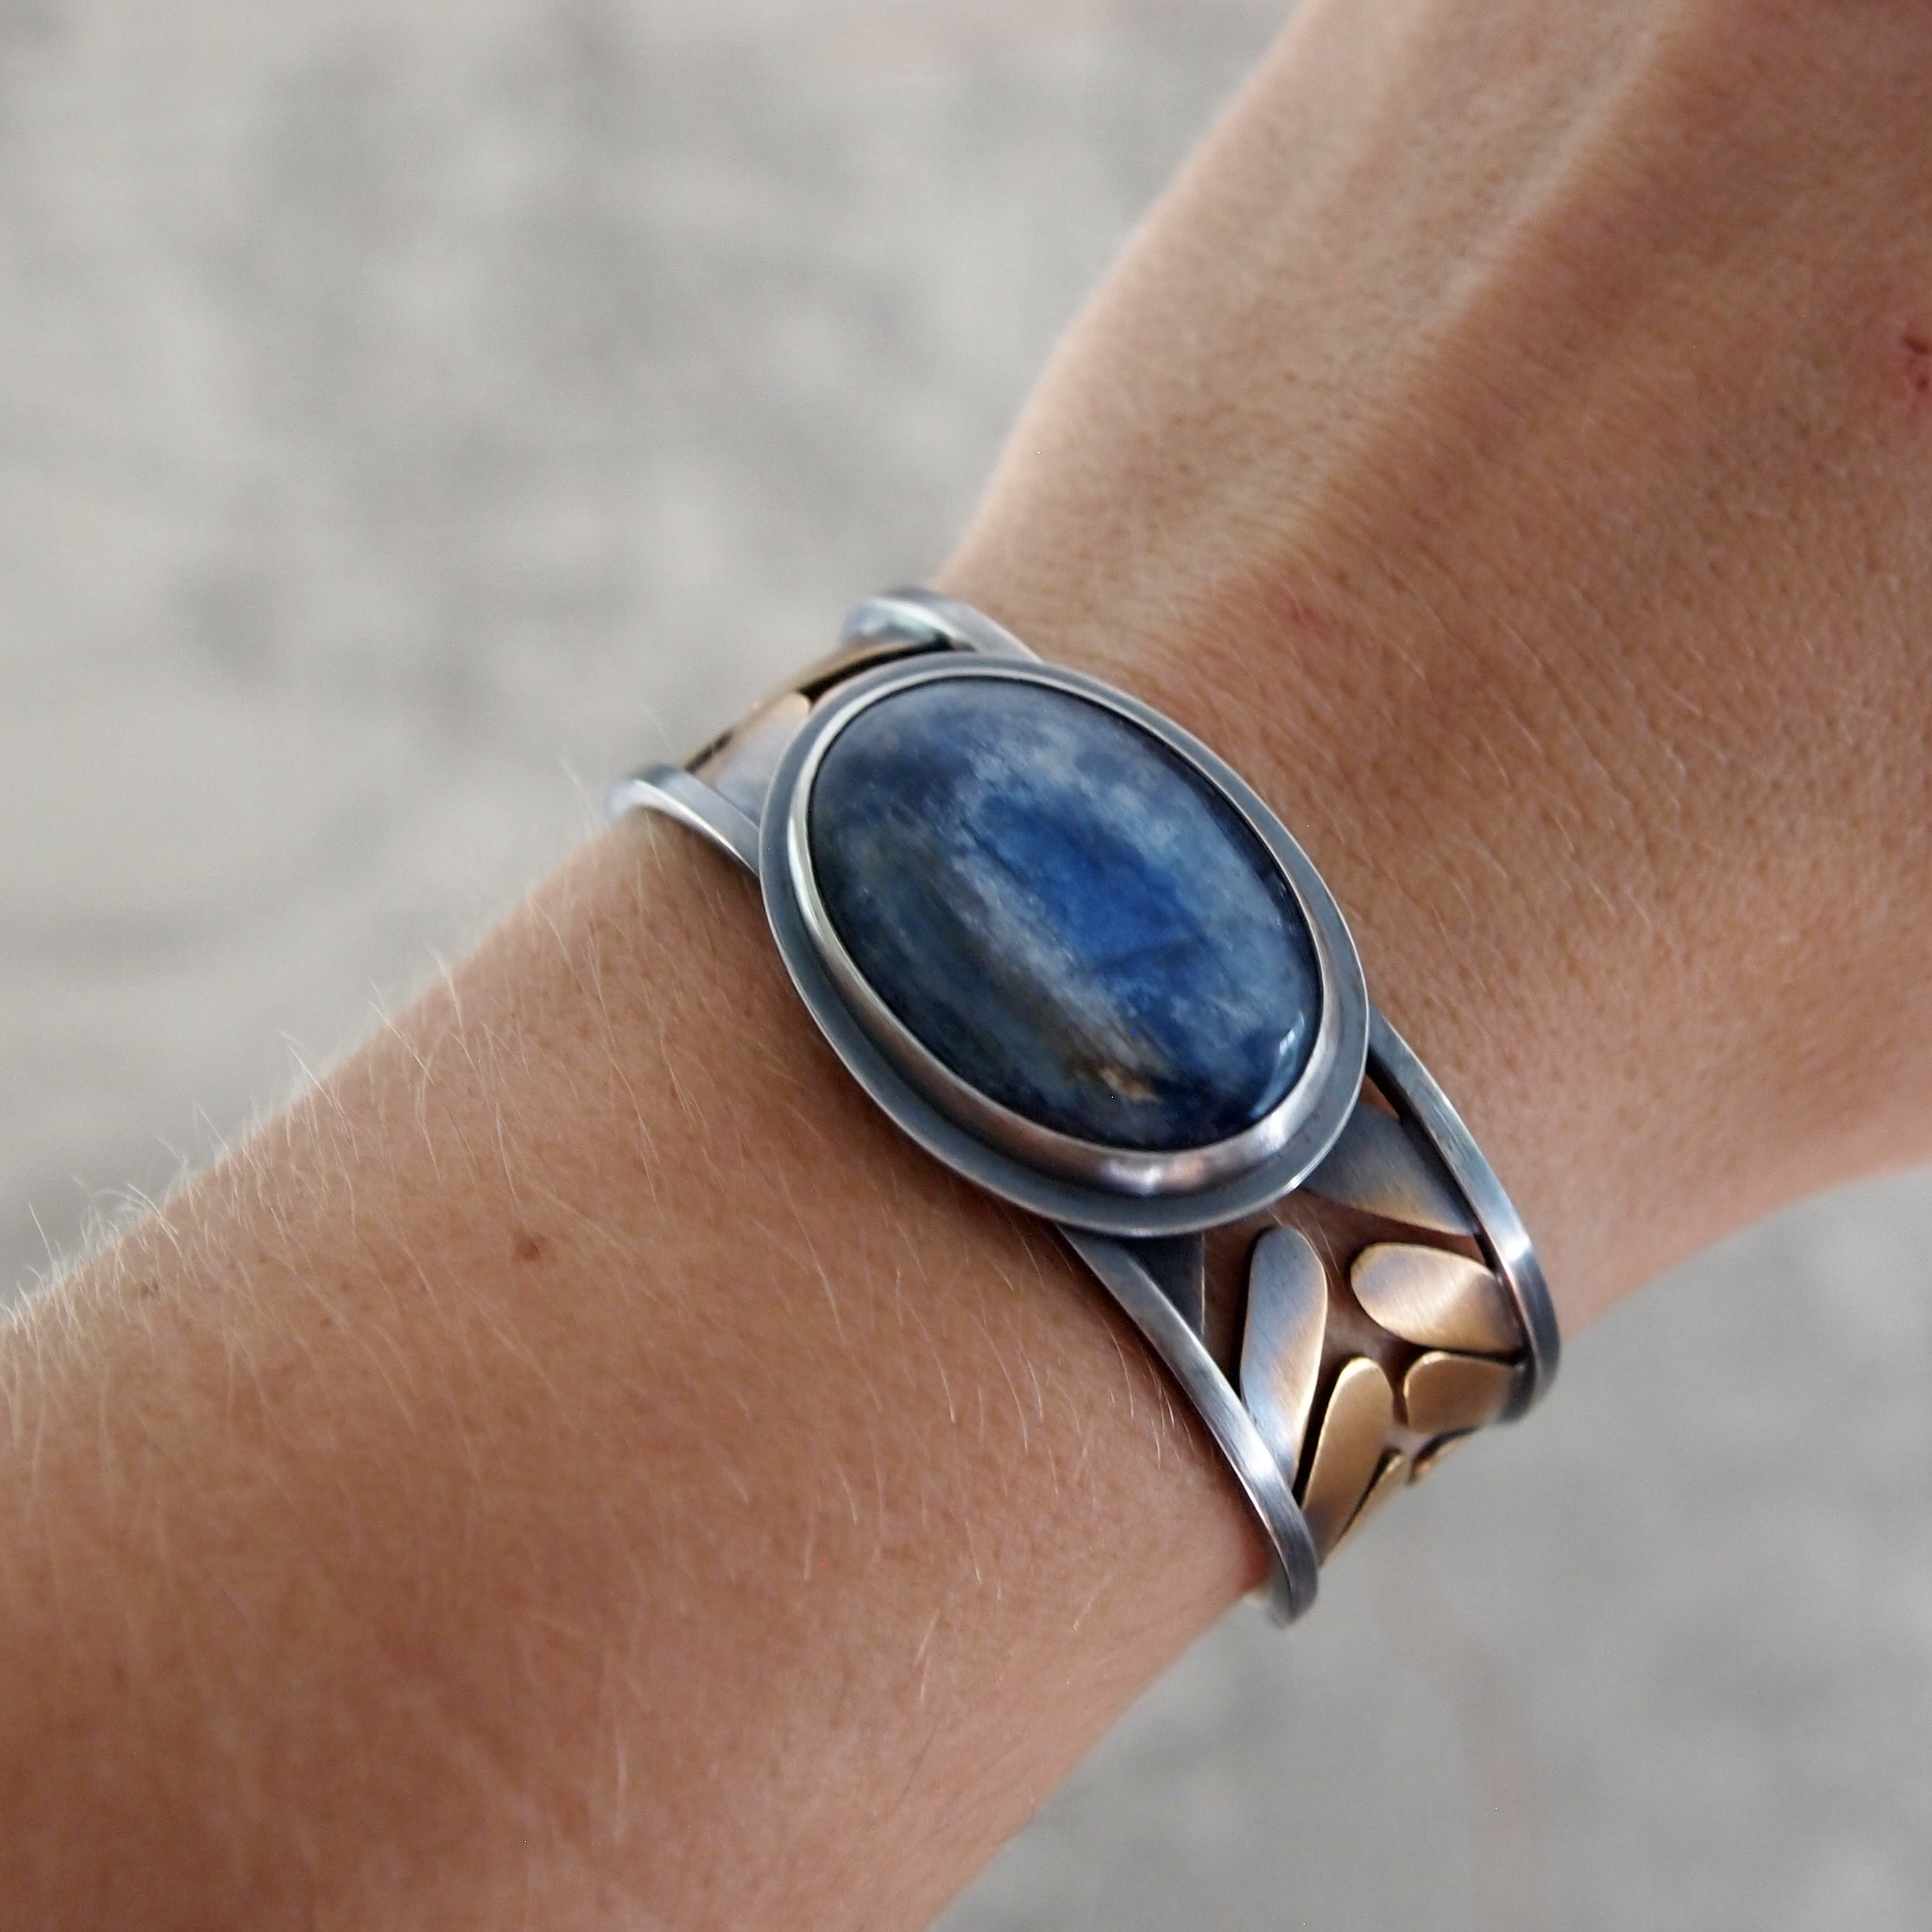 handcrafted kyanite, sterling silver, and brass cuff bracelet inspired by wheat - meritmade